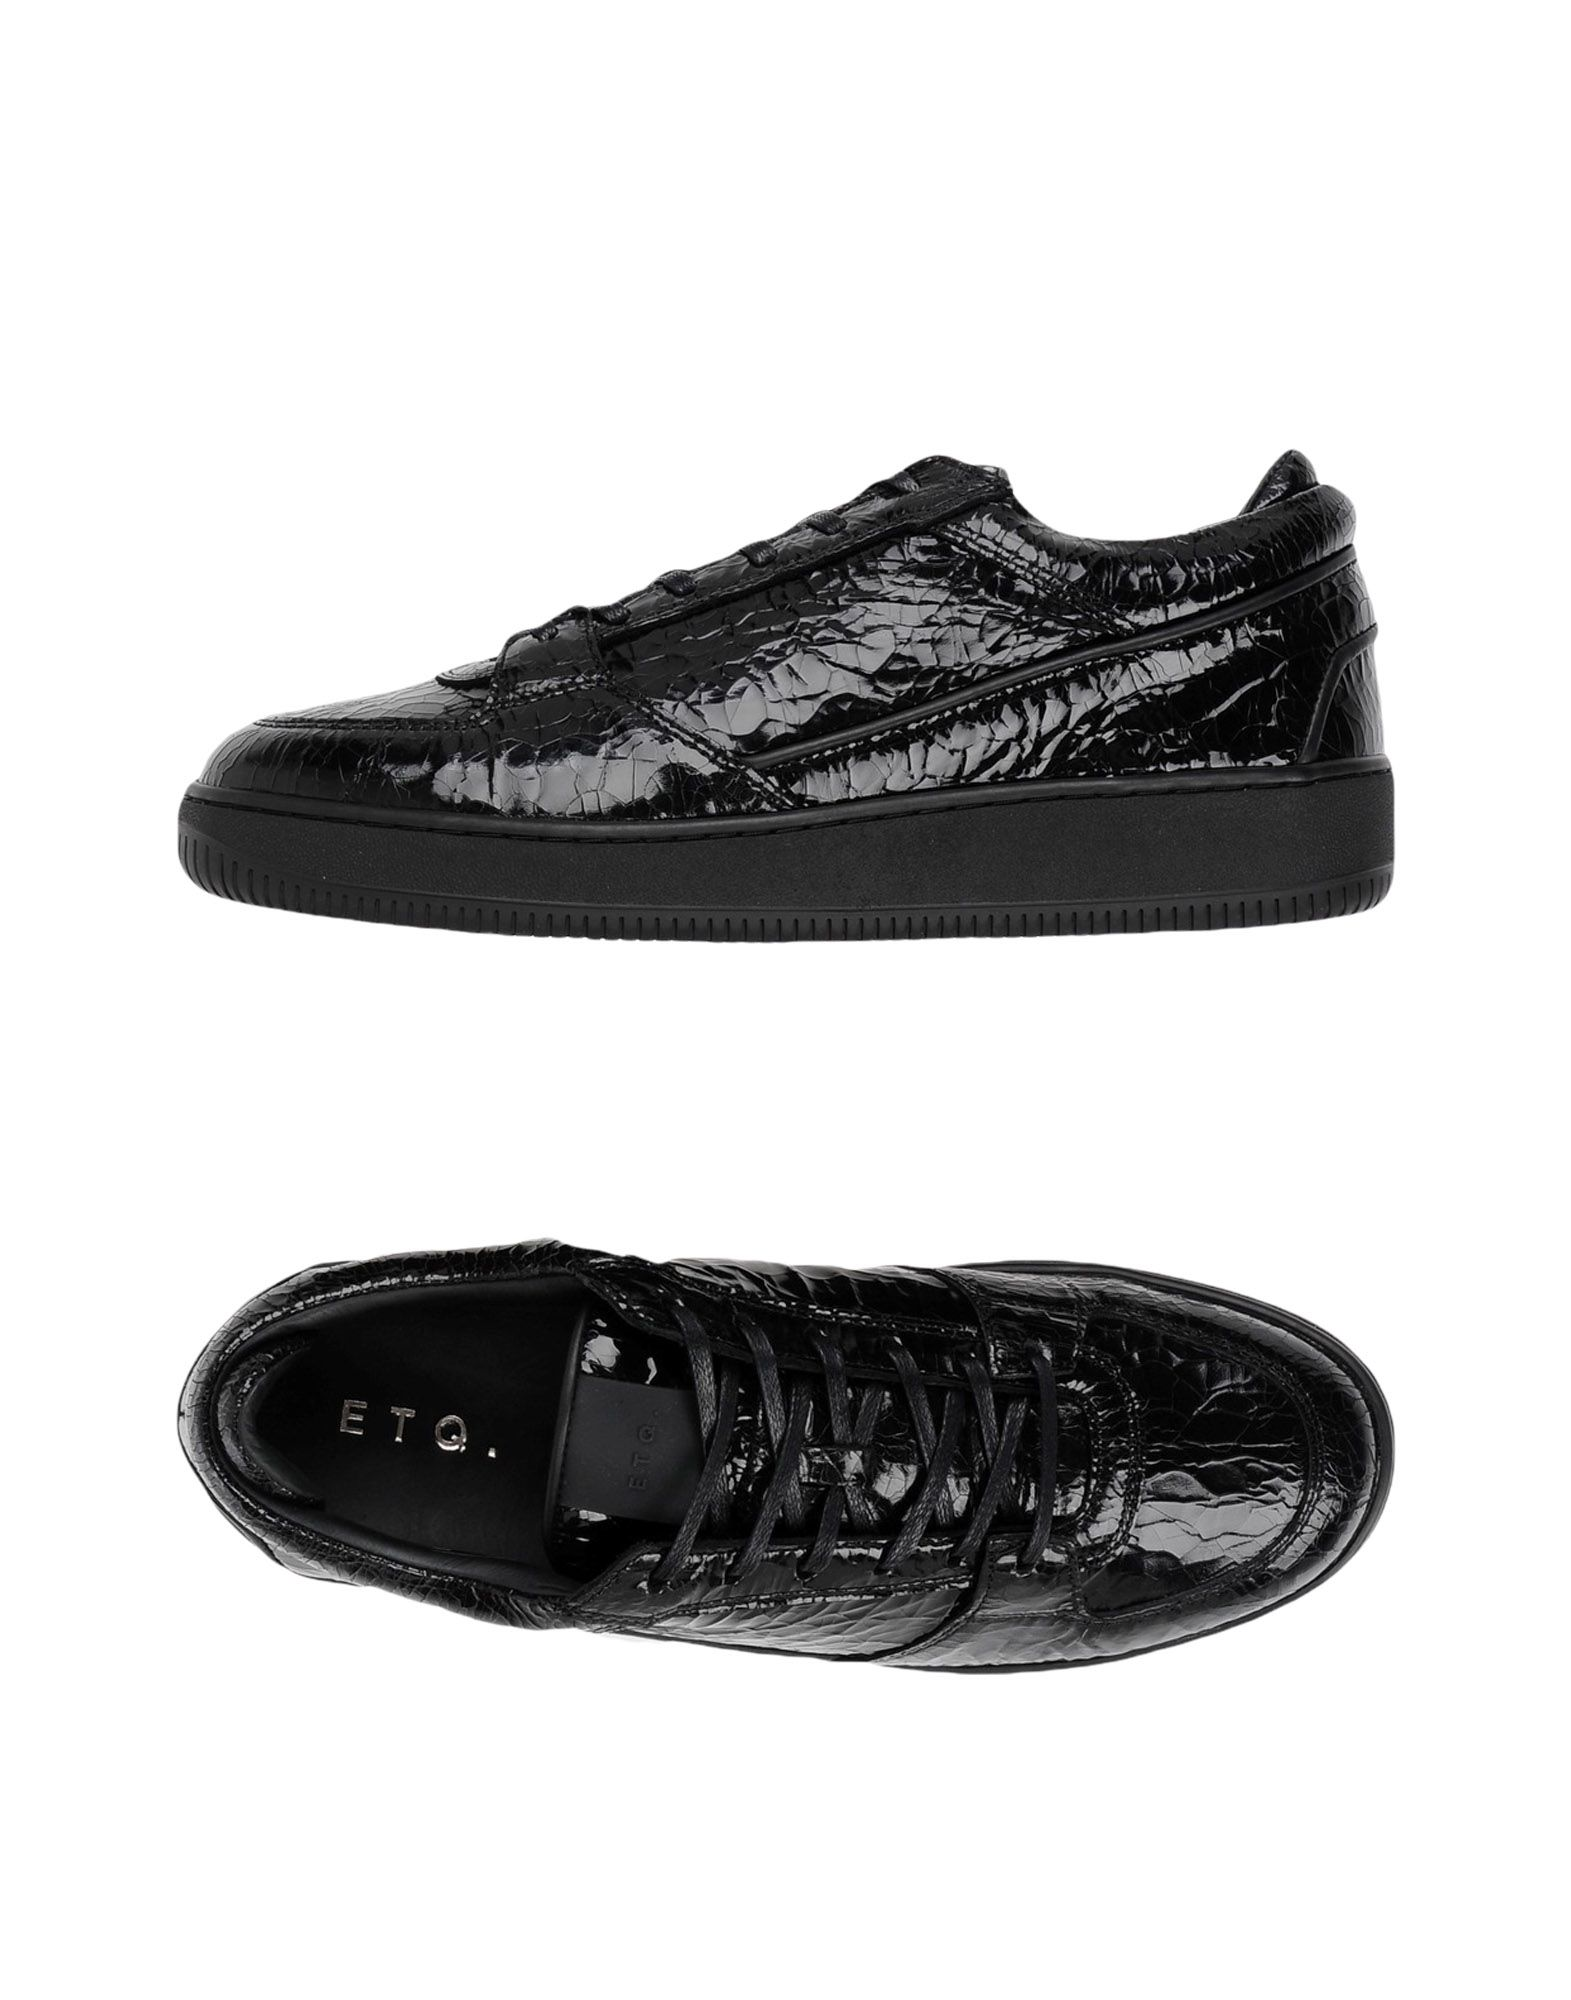 Etq Amsterdam Sneakers - Men Etq Amsterdam Sneakers online on 11339495JW  United Kingdom - 11339495JW on 0996d9